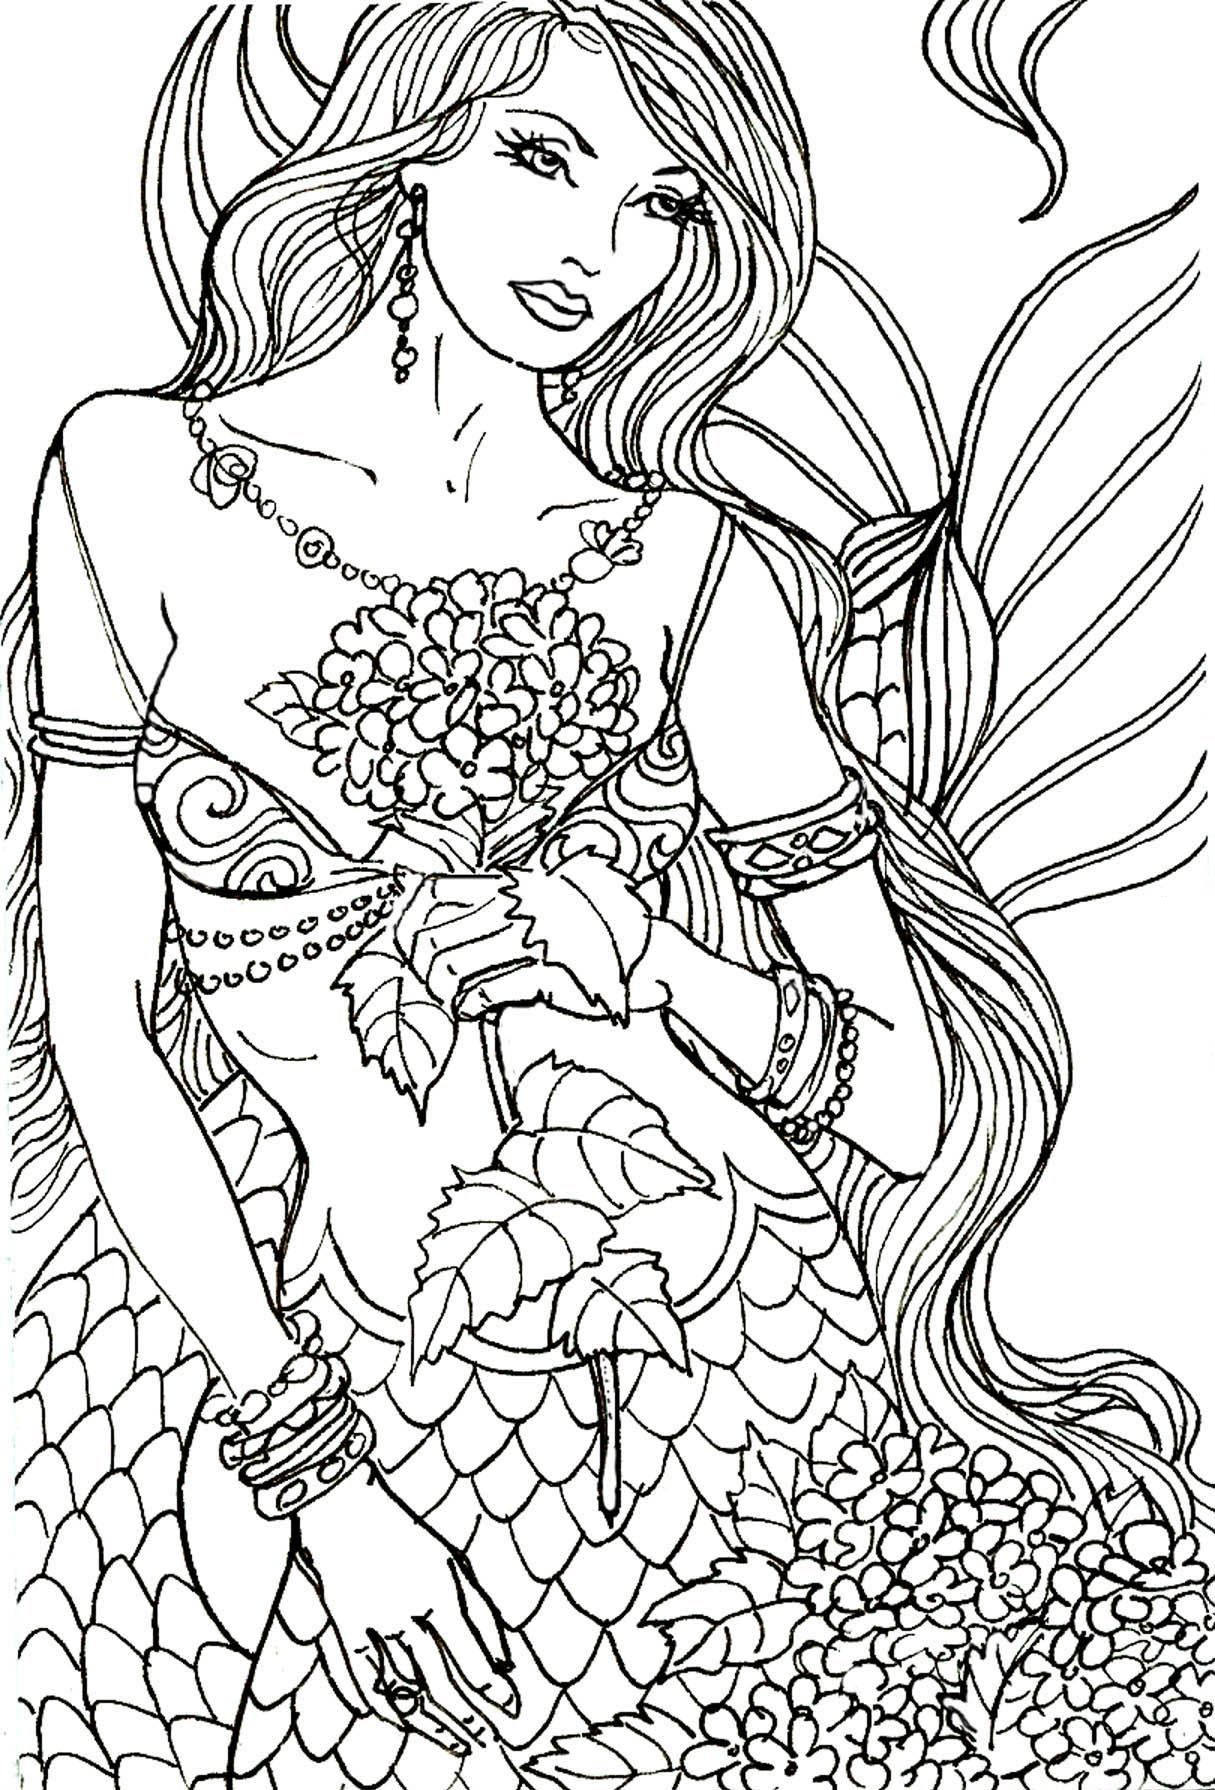 Mermaid Coloring Pages for Adults - Best Coloring Pages ...